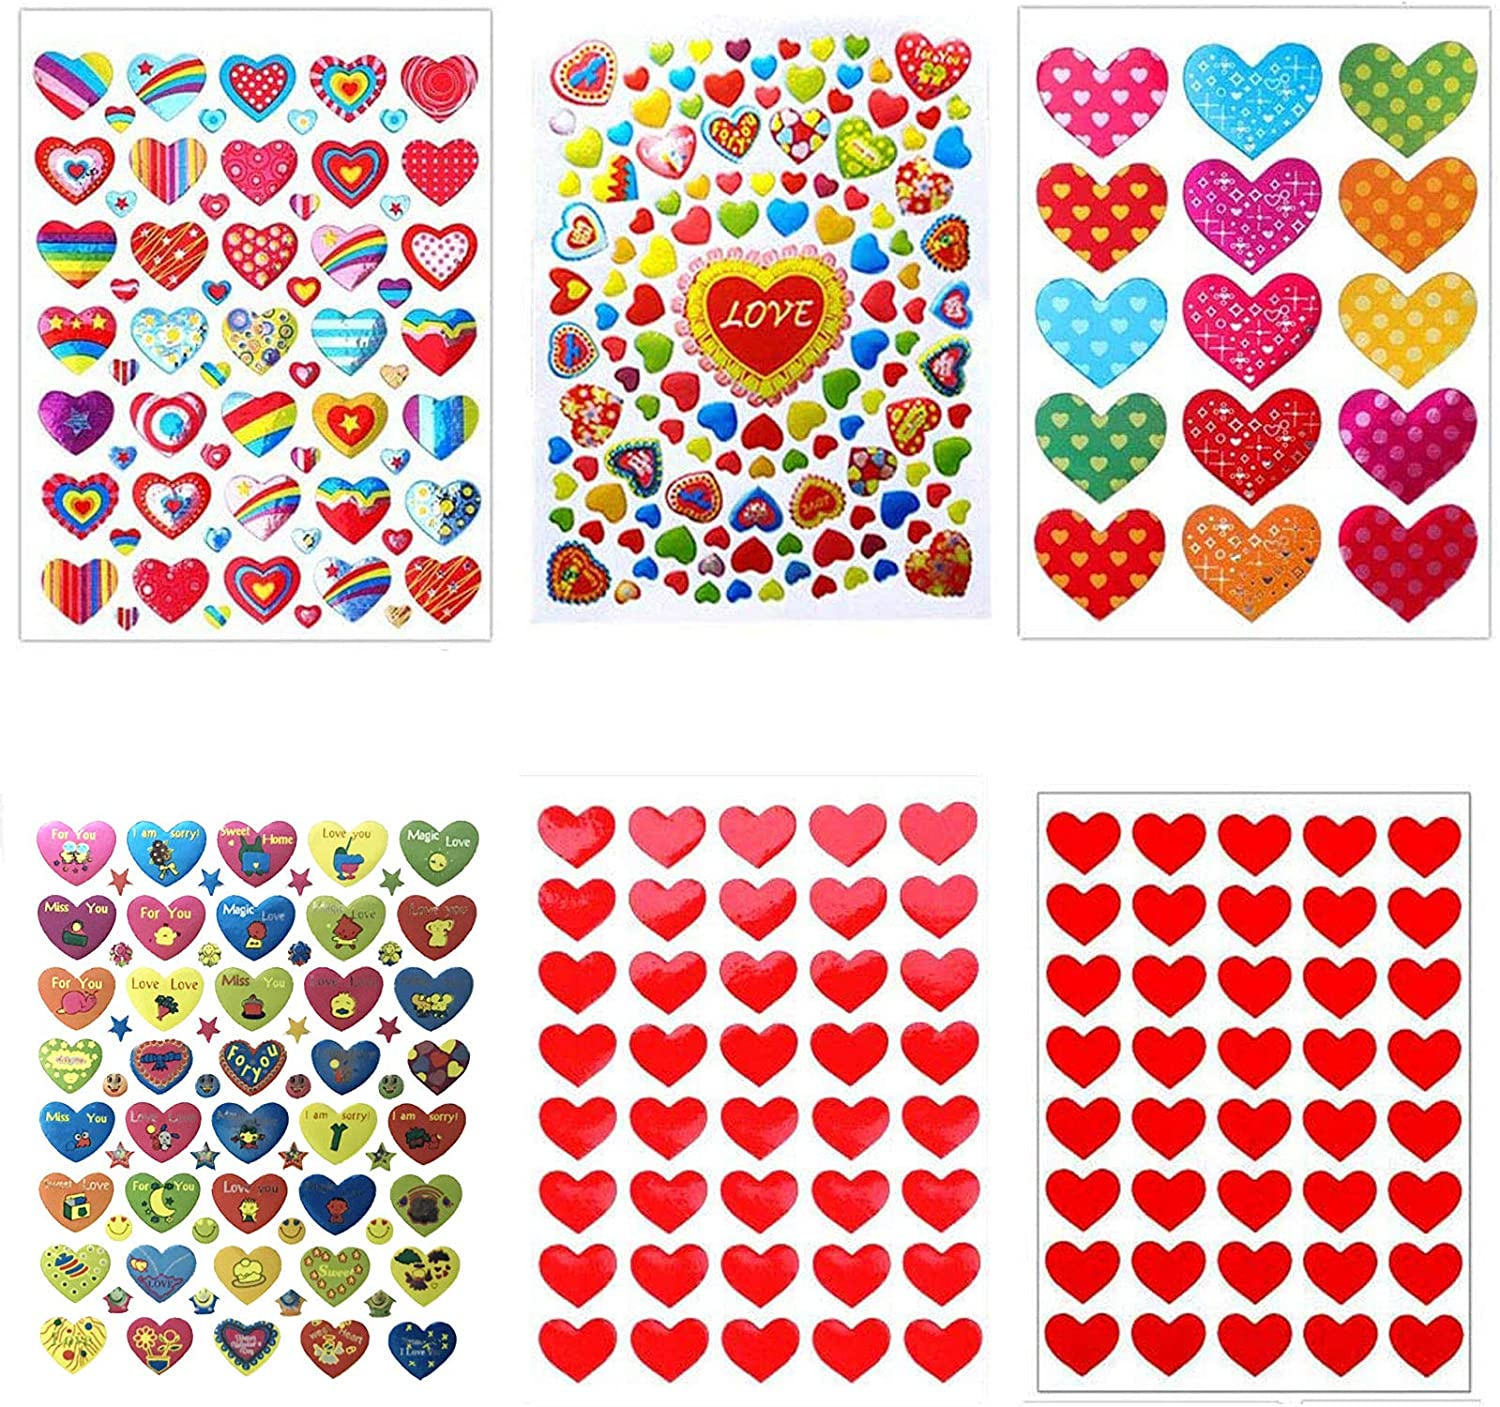 60 Sheet Valentines Heart Stickers Love Decorative Glitter Sticker for Kids Envelopes Cards Craft Scrapbooking for Great Party Favors Gift Prize Class Rewards Award Praise Style B